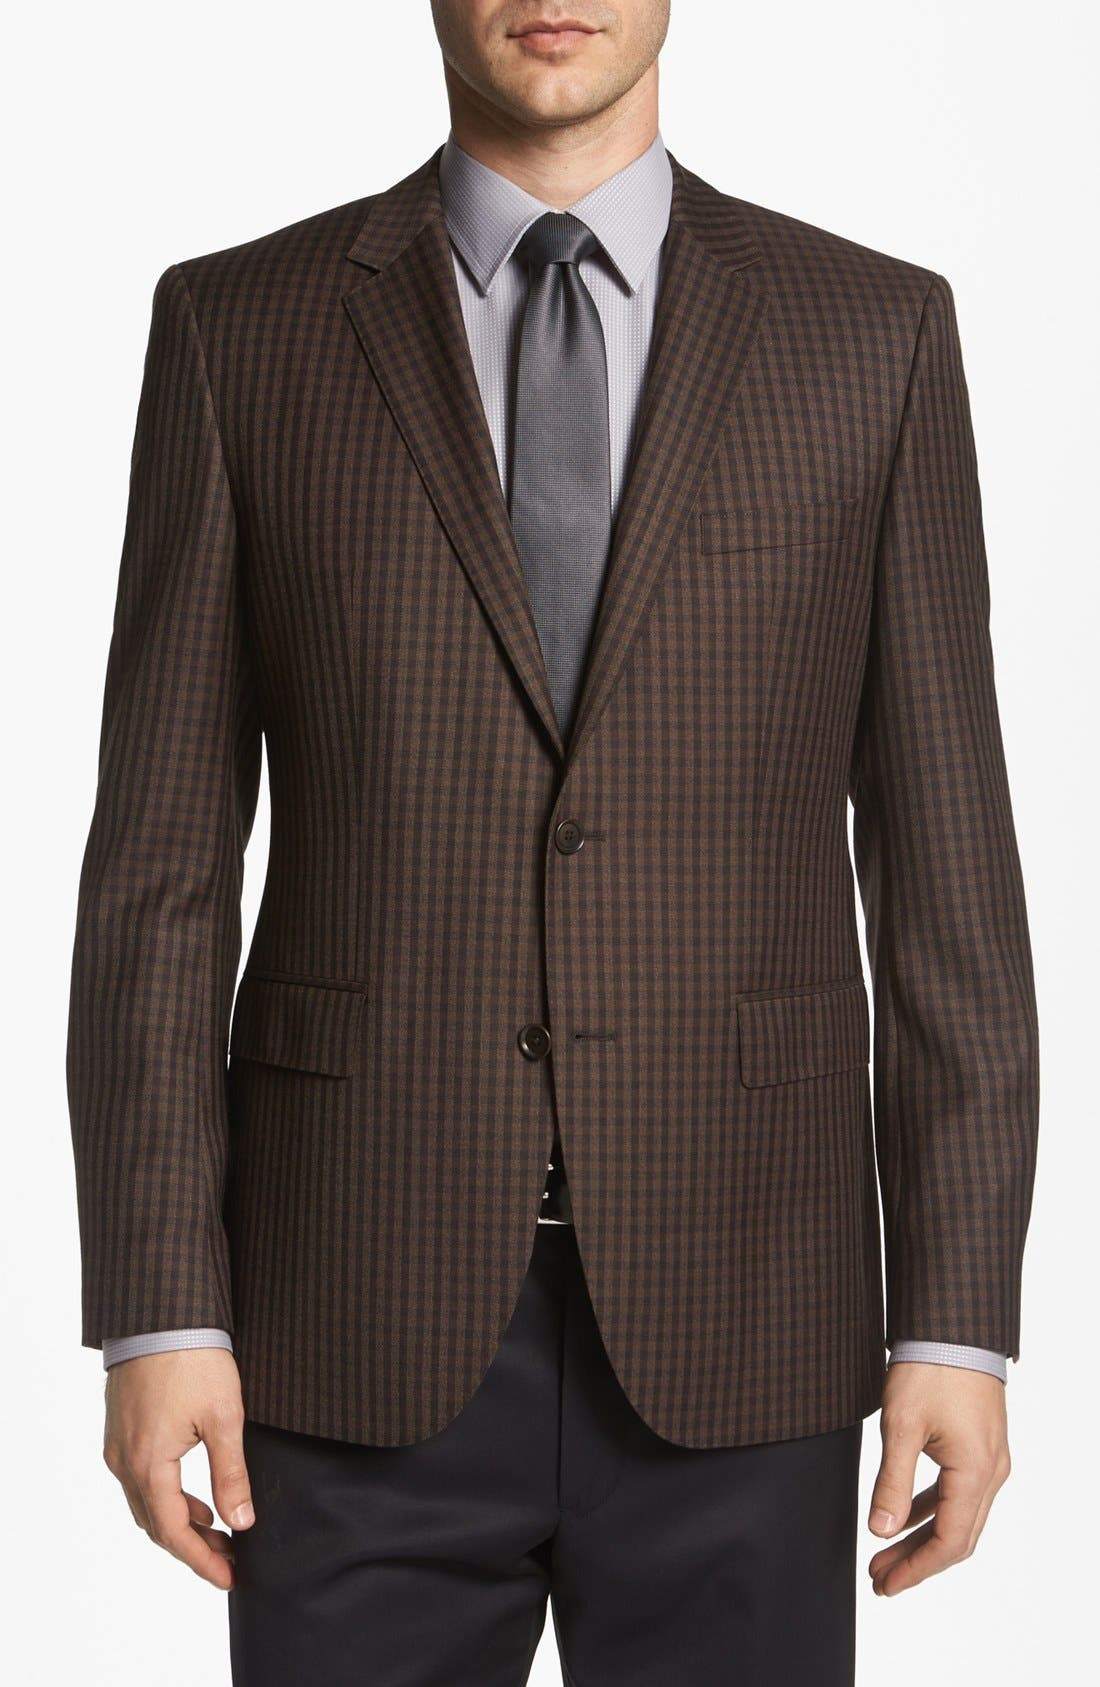 Alternate Image 1 Selected - BOSS HUGO BOSS 'The Smith' Trim Fit Check Sportcoat